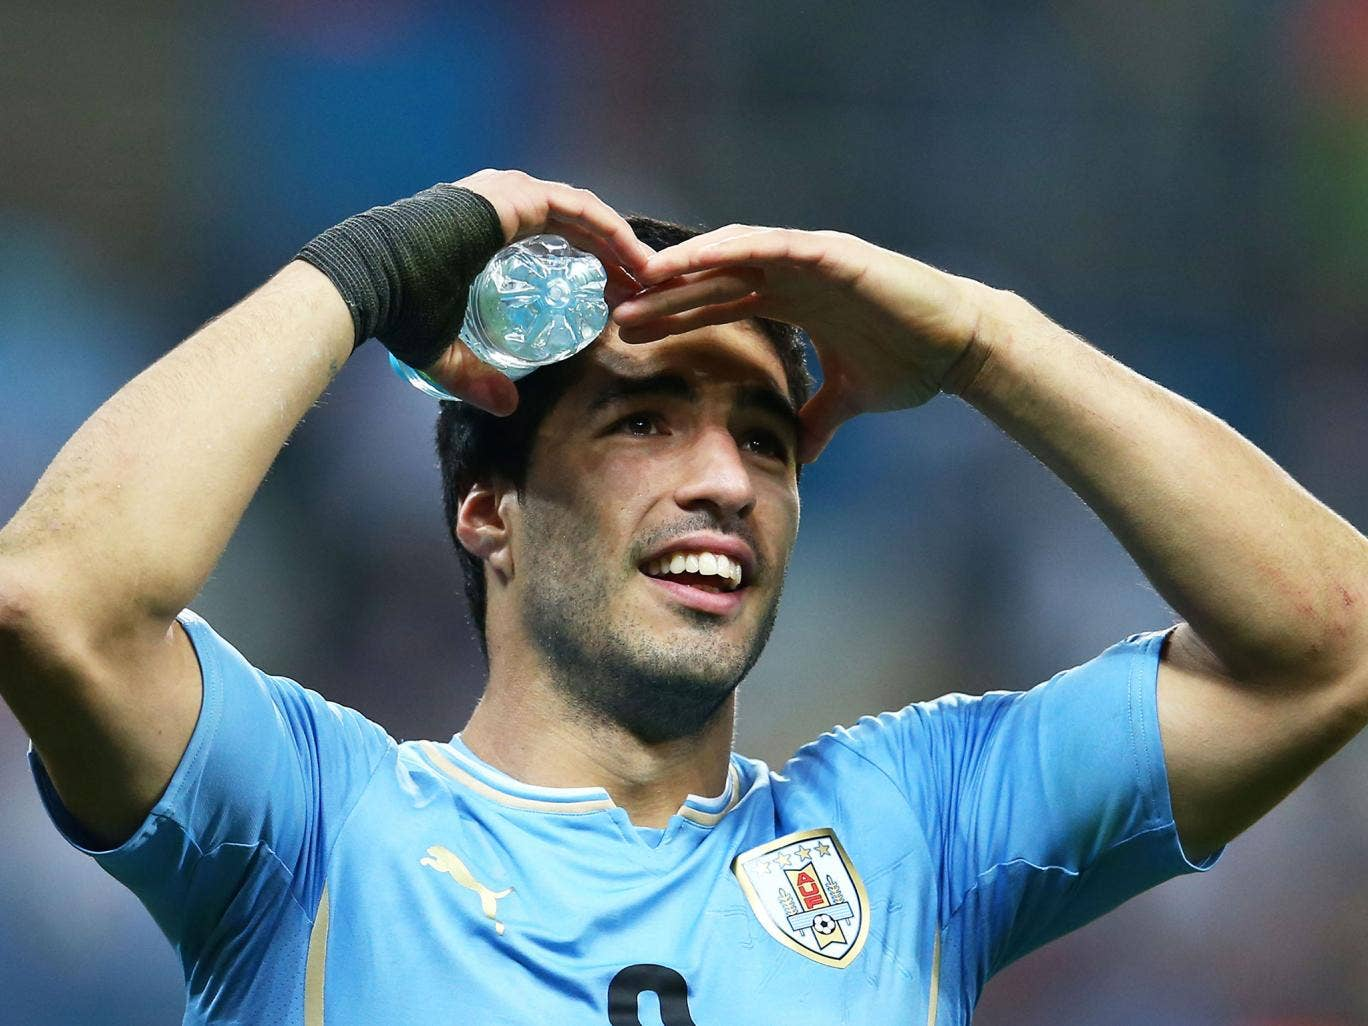 Luis Suarez looks towards the crowd during the 2-1 victory over England